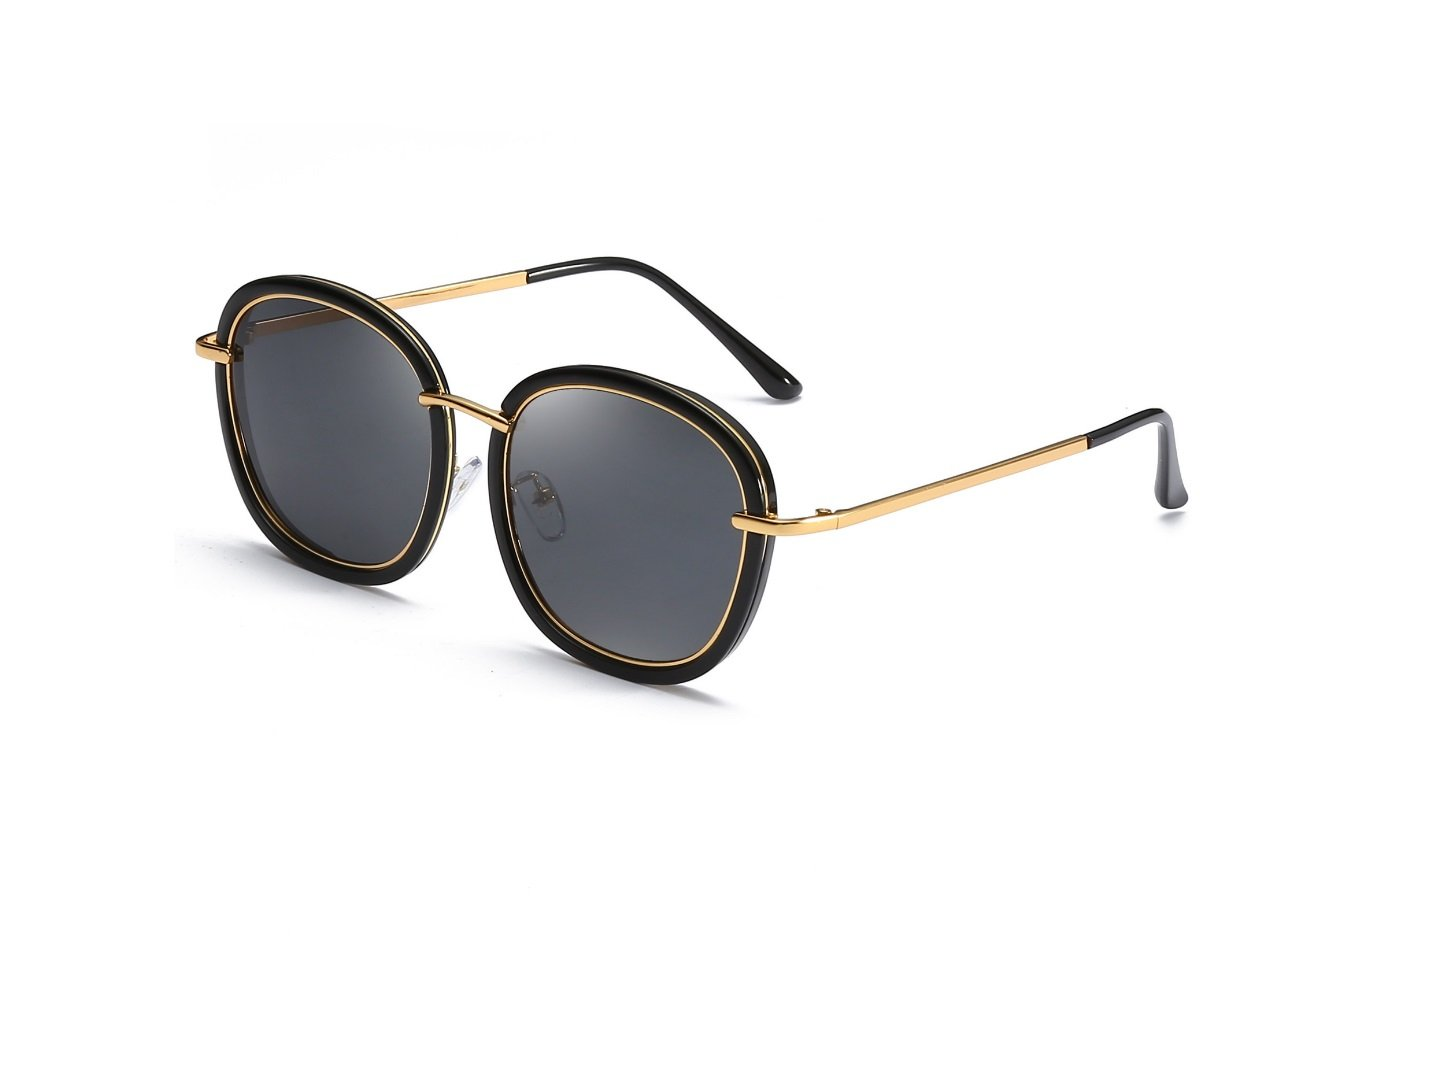 HDWY New European and American Sunglasses Ms. Extreme Fashion Star With Sunglasses Spot Fashion Outdoor Street Shoot, Camping, Fishing Driving (Color : 1) by HDWY